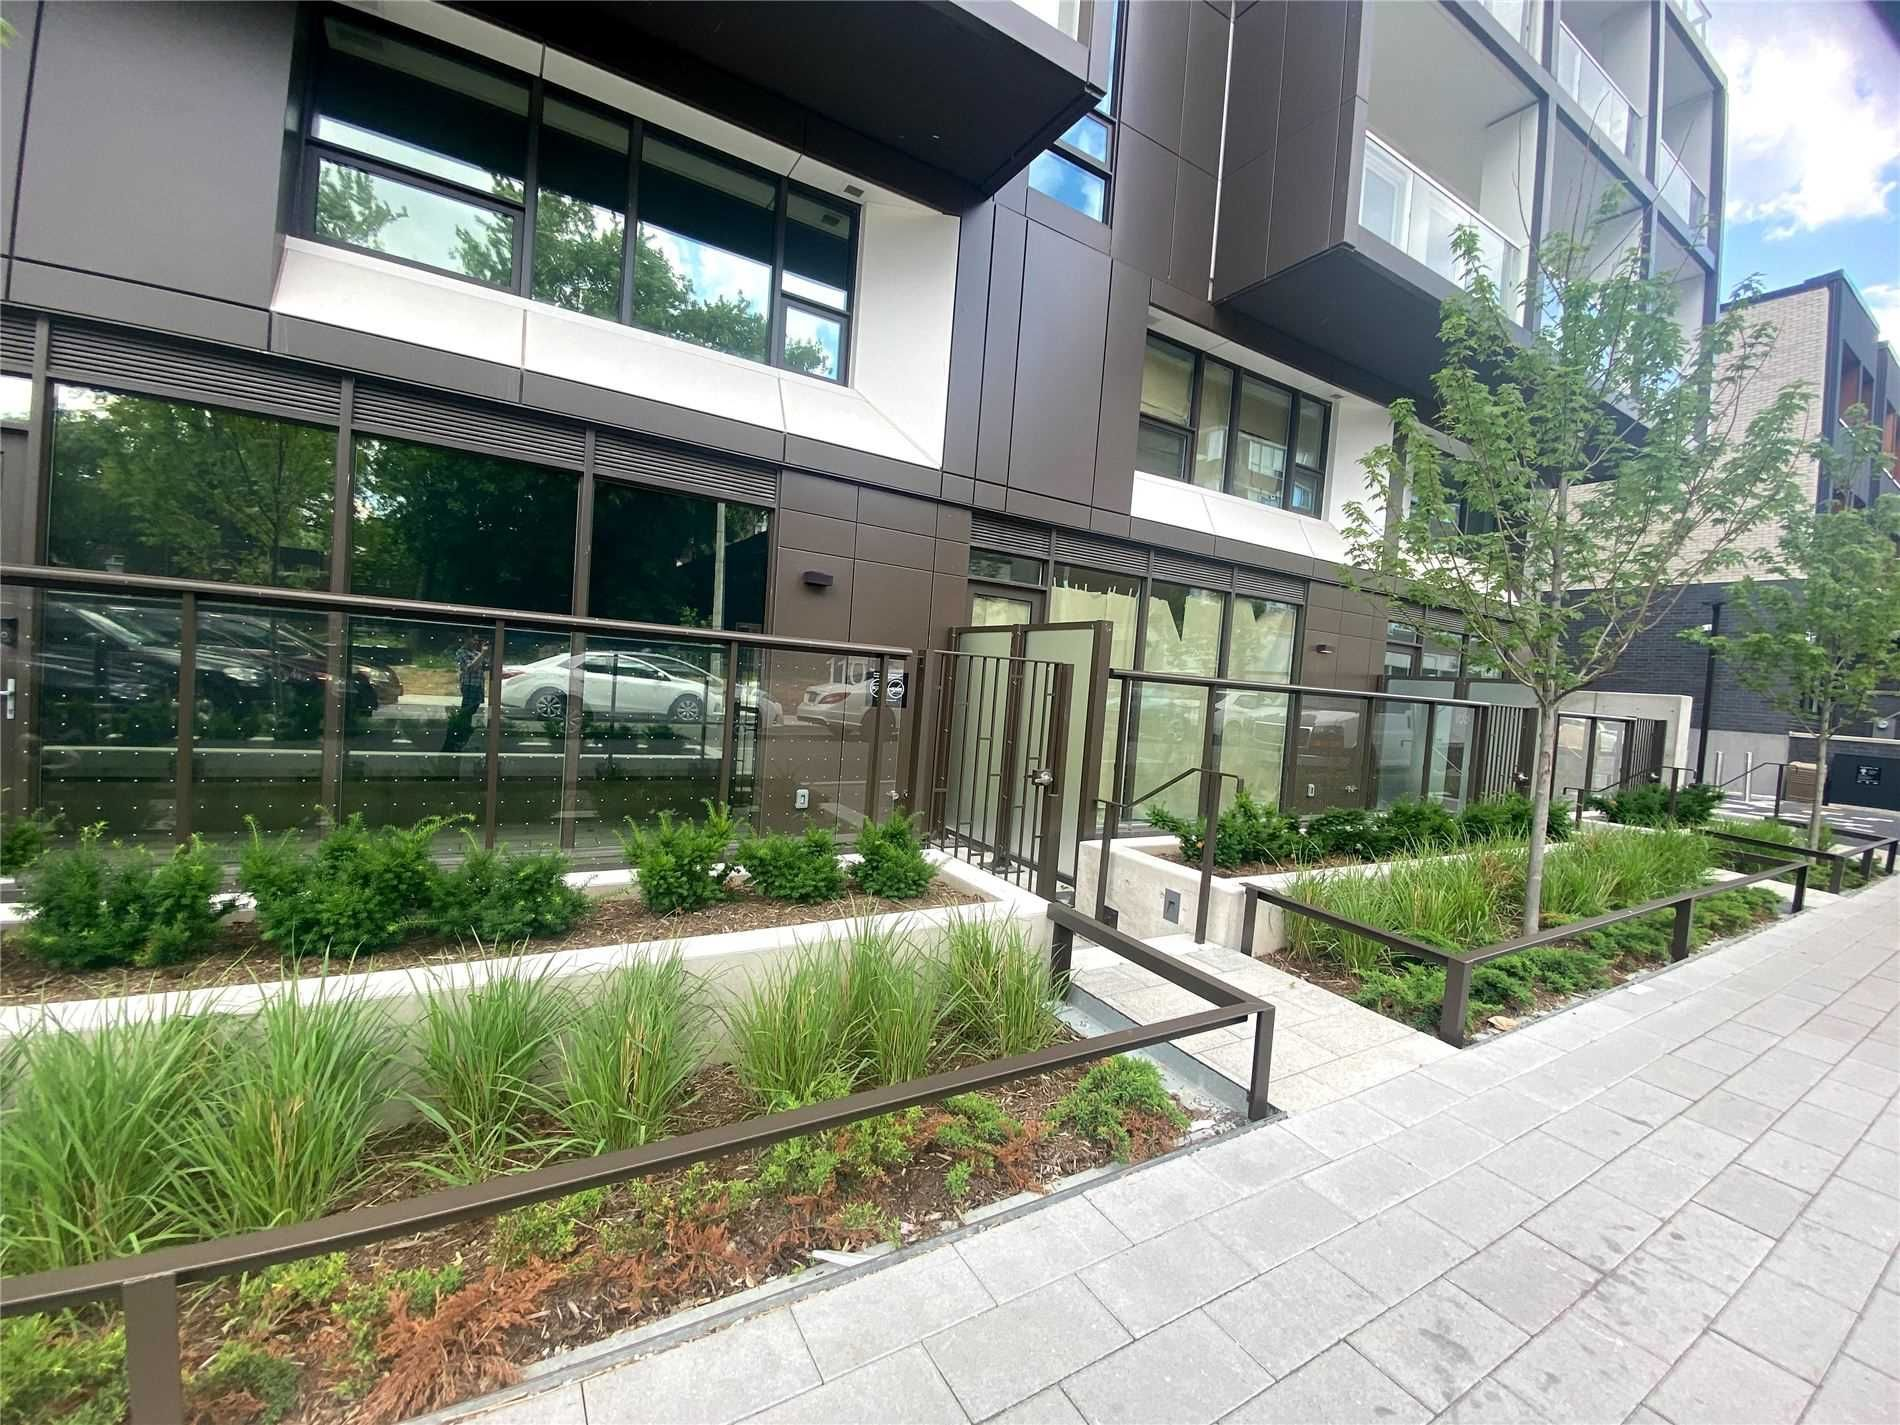 80 Vanauley St, unit 108 for sale in Toronto - image #1